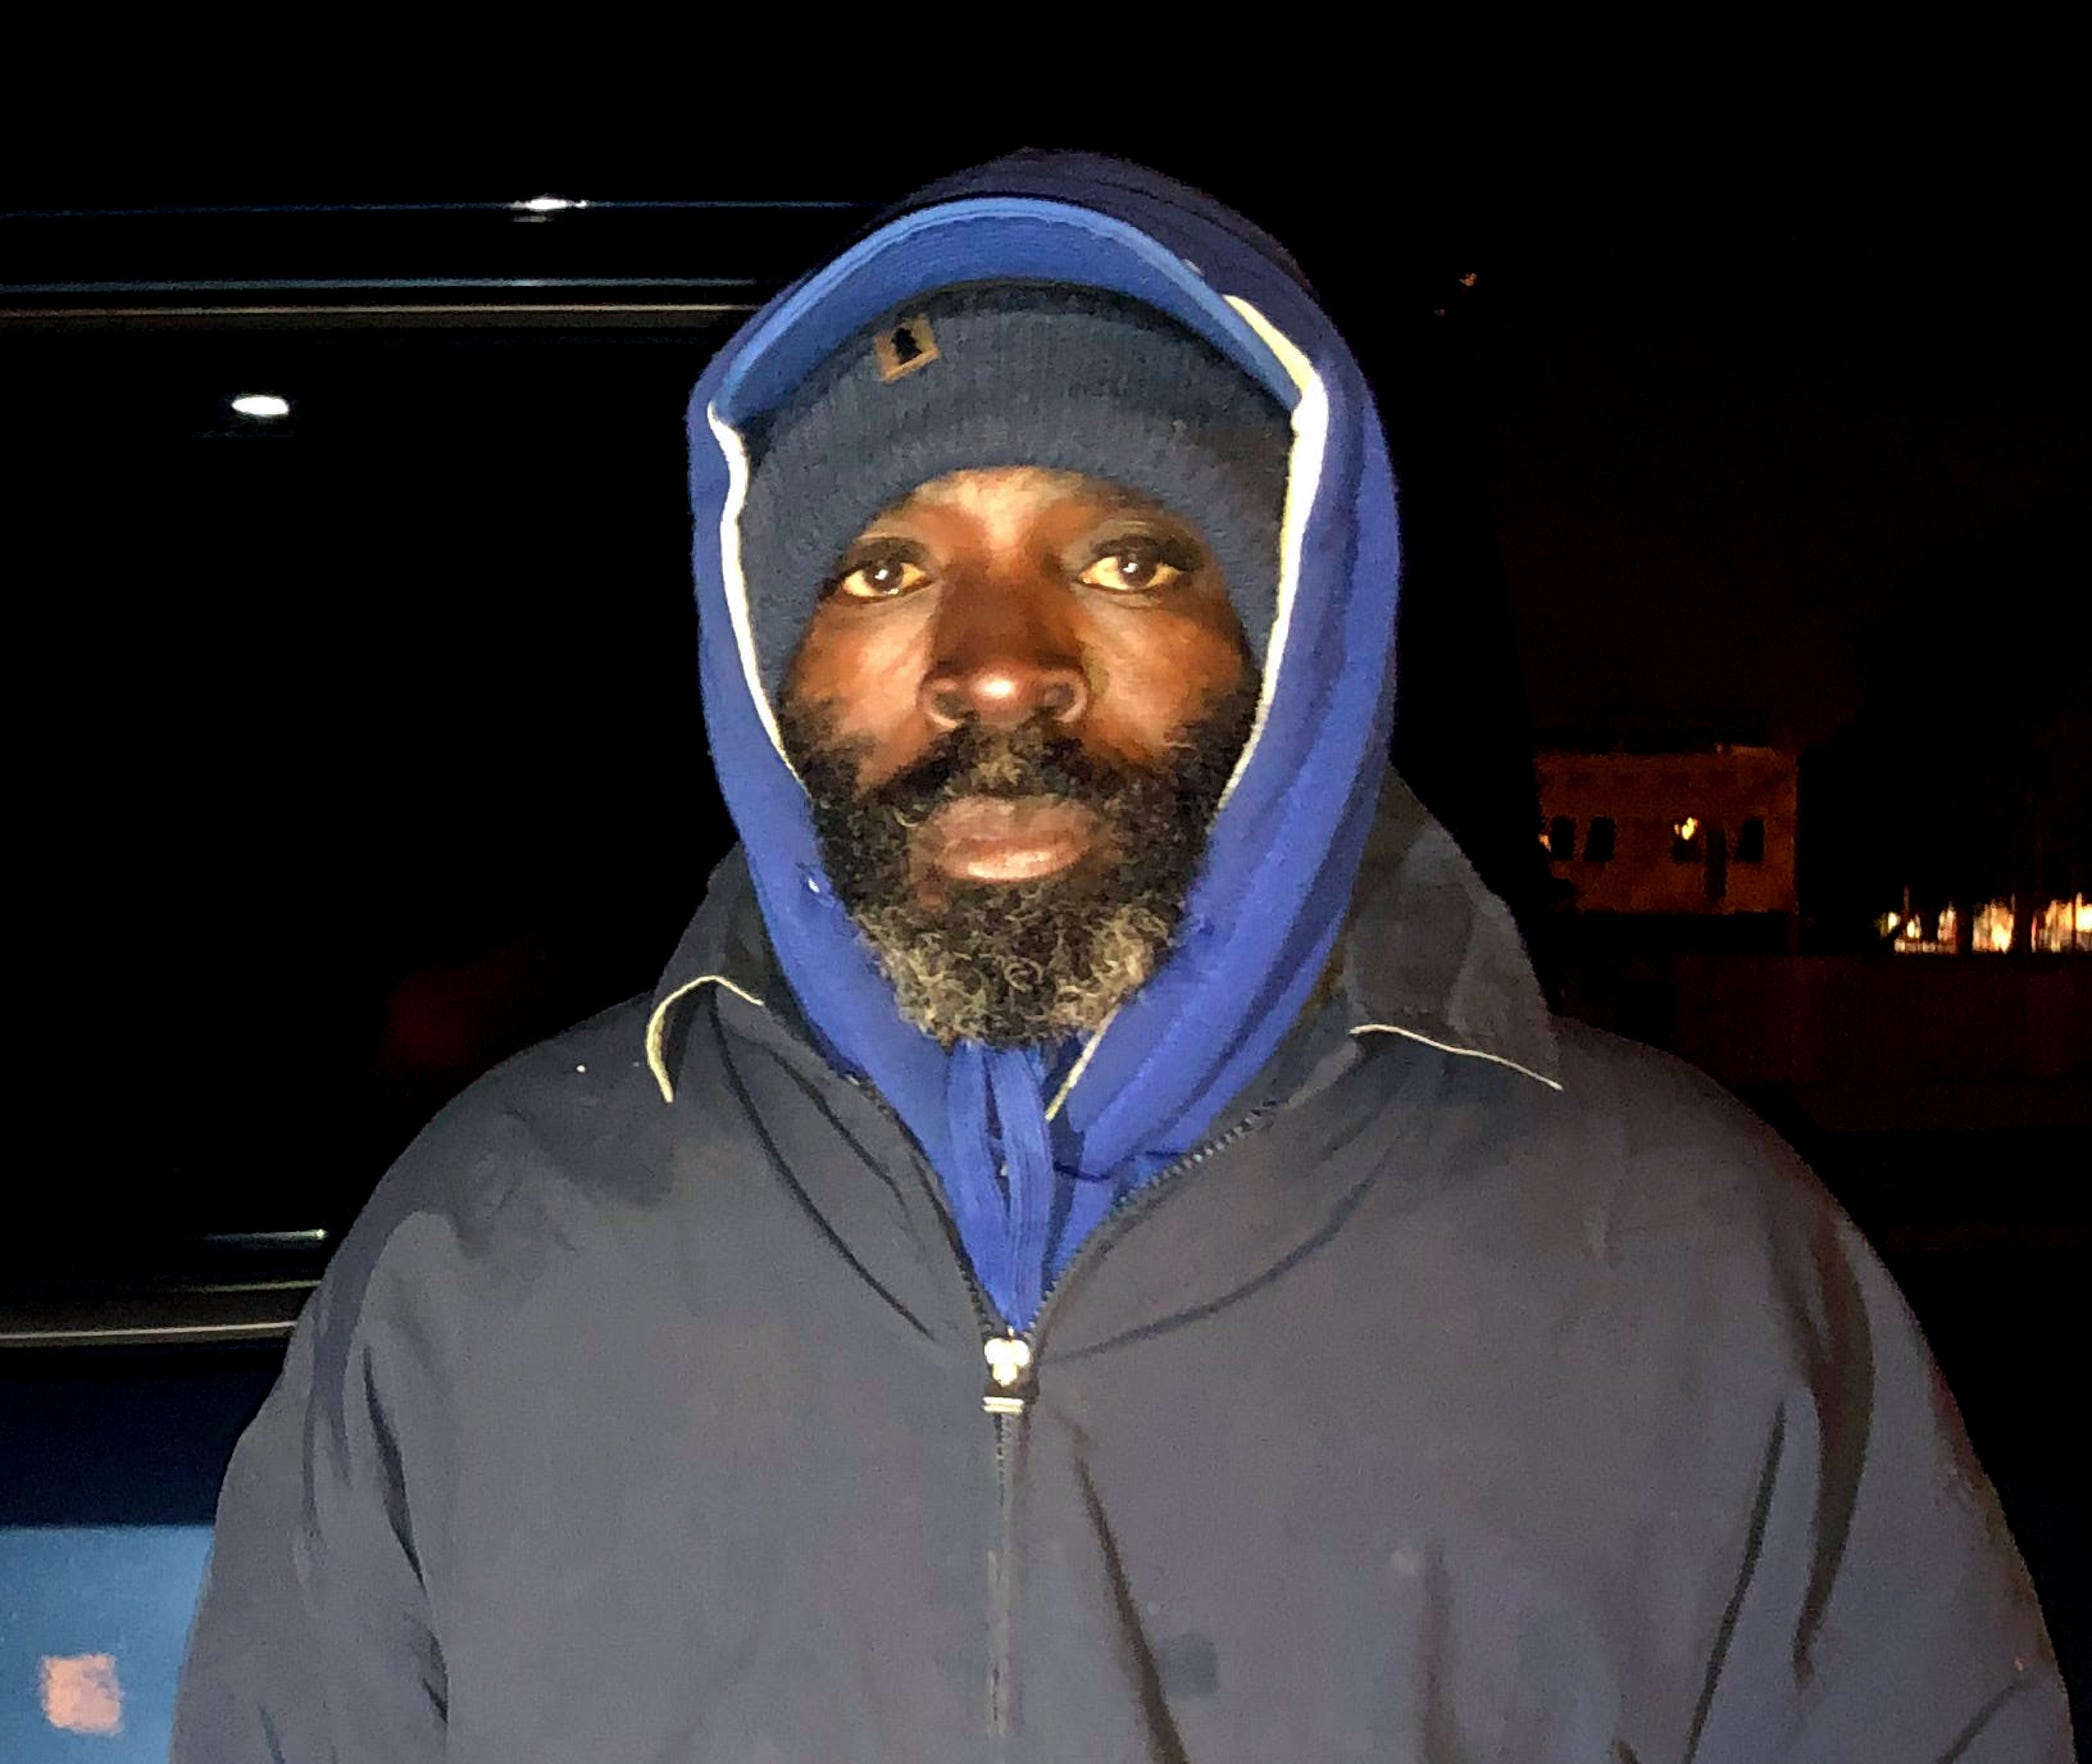 Terress Palmore, 52, knocked on the door of the St. Vincent DePaul soup kitchen building as Room in the Inn volunteers were settling their guests for the night. Palmore said he'd been panhandling to raise money for the room he and his wife rented, but the temperature had dropped too low for him to continue. Room in the Inn volunteers supplied him with two coats, blankets, a sleeping mat and a ride back to his lodging for the night, on January 21, 2020.